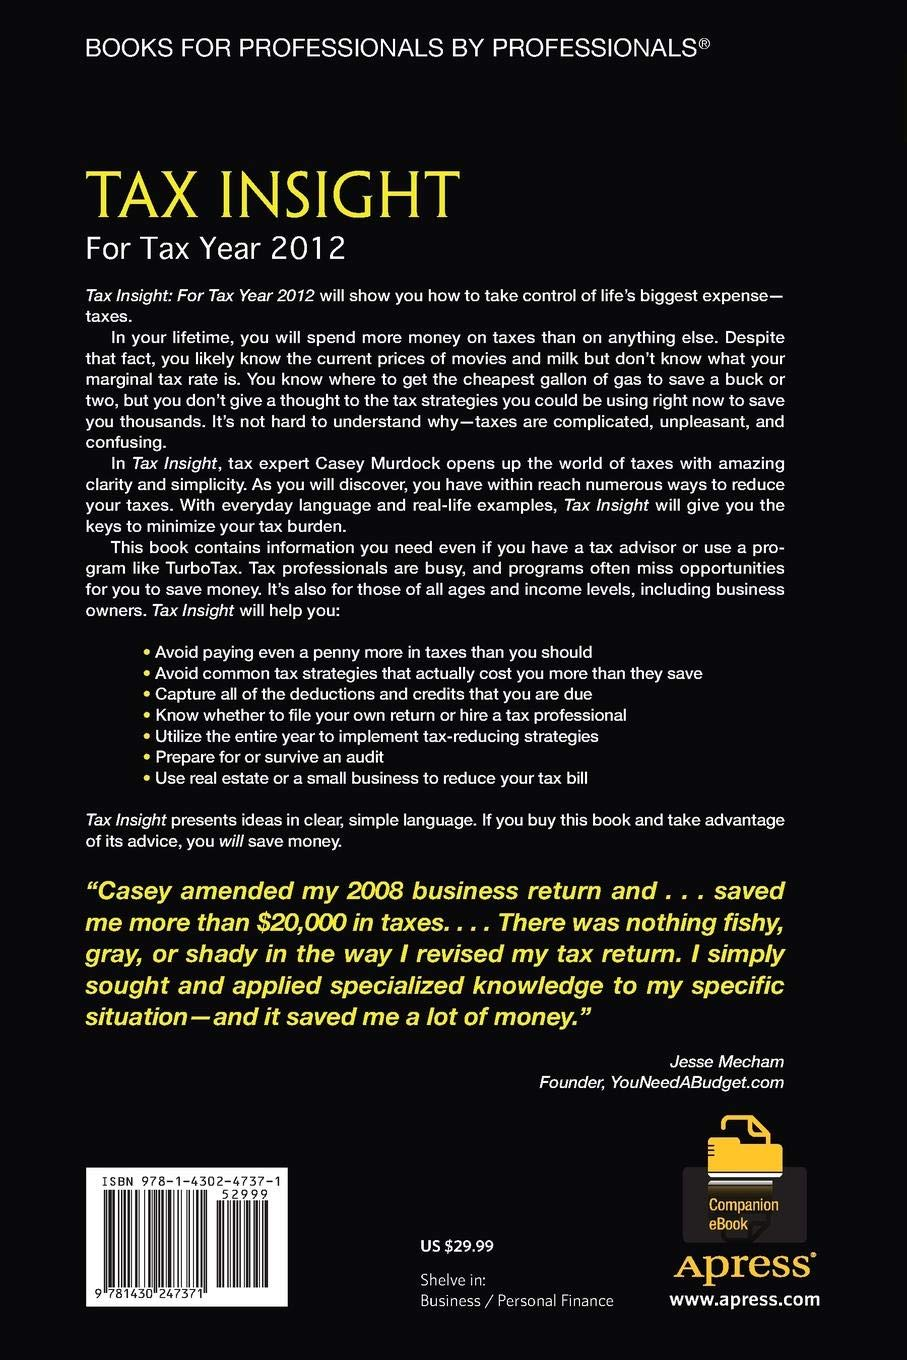 For Tax Year 2012